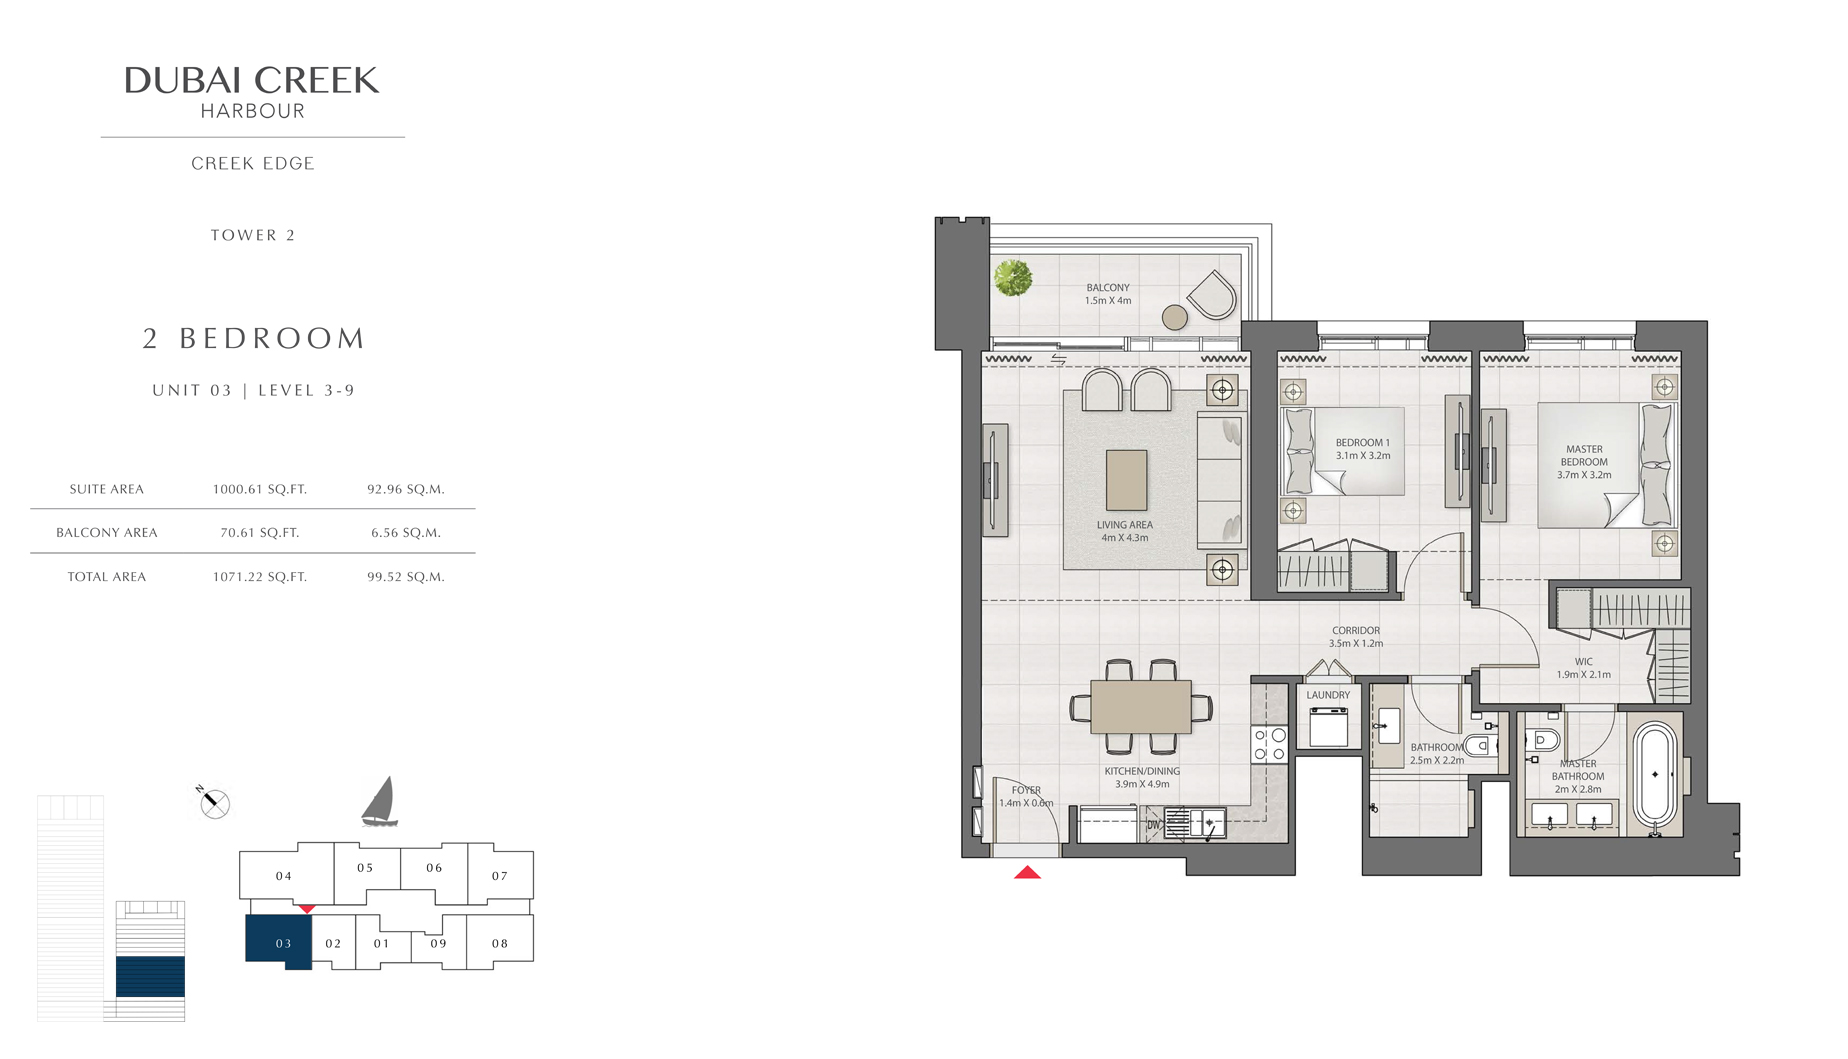 2 Bedroom Tower 2 Unit 03 Level 3-9 Size 1071 sq.ft